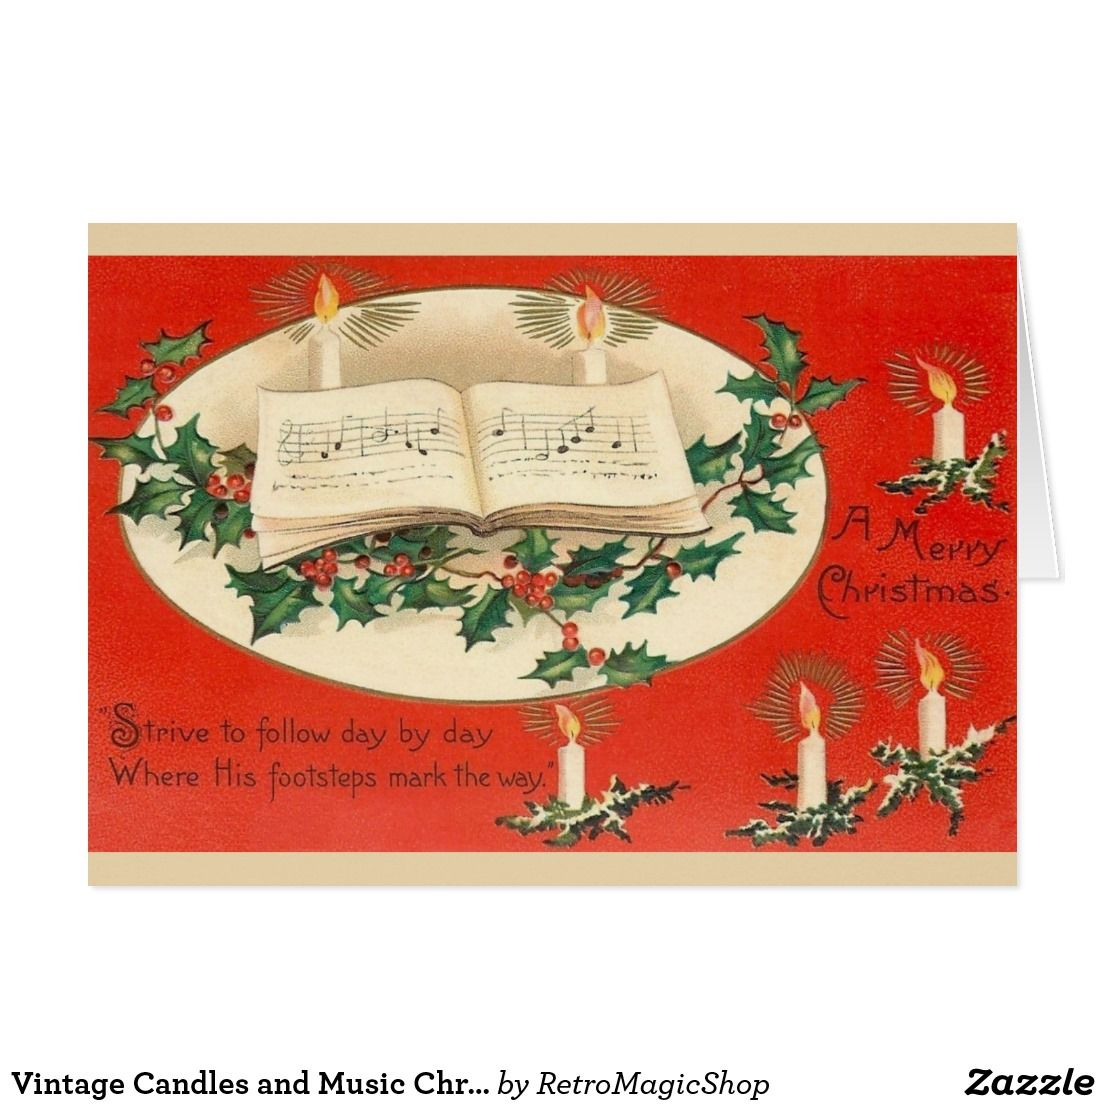 Vintage Candles and Music Christmas Greeting Card | Vintage ...